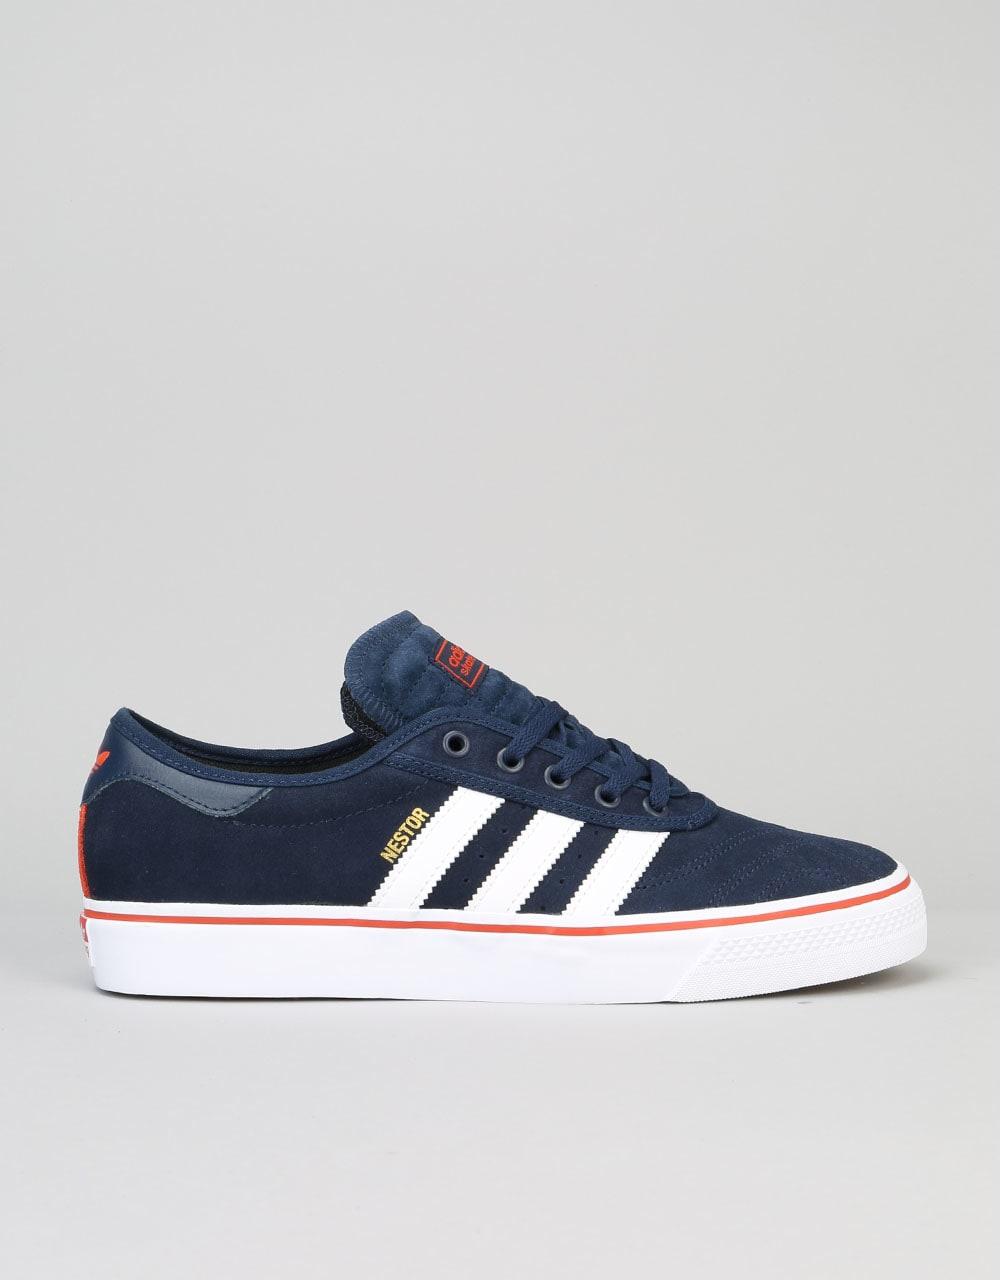 new product c84dc a0655 Adidas Adi-Ease Premiere ADV Skate Shoes - Collegiate NavyWhiteCraft  ChilI  Sale  Clearance  Cheap Skate Clothing, Footwear  Hardware   Route One